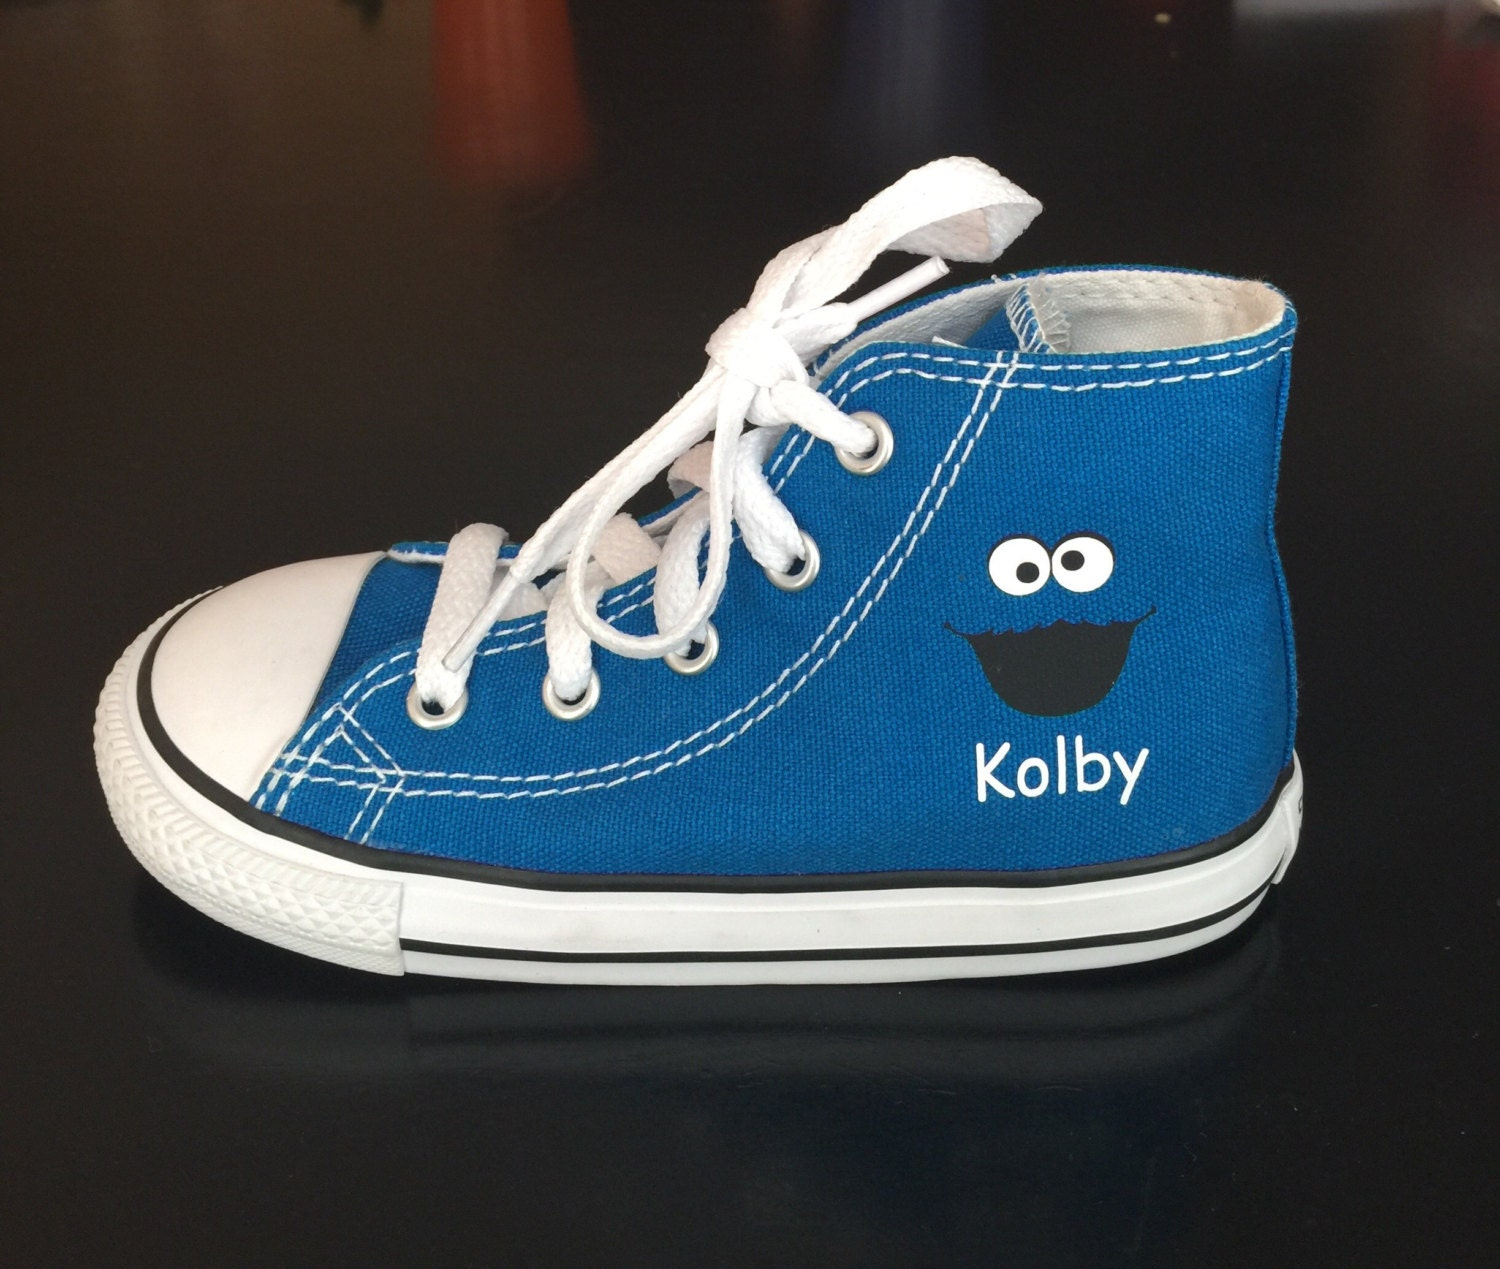 Cookie Monster Shoes Custom High Top Converse Shoes